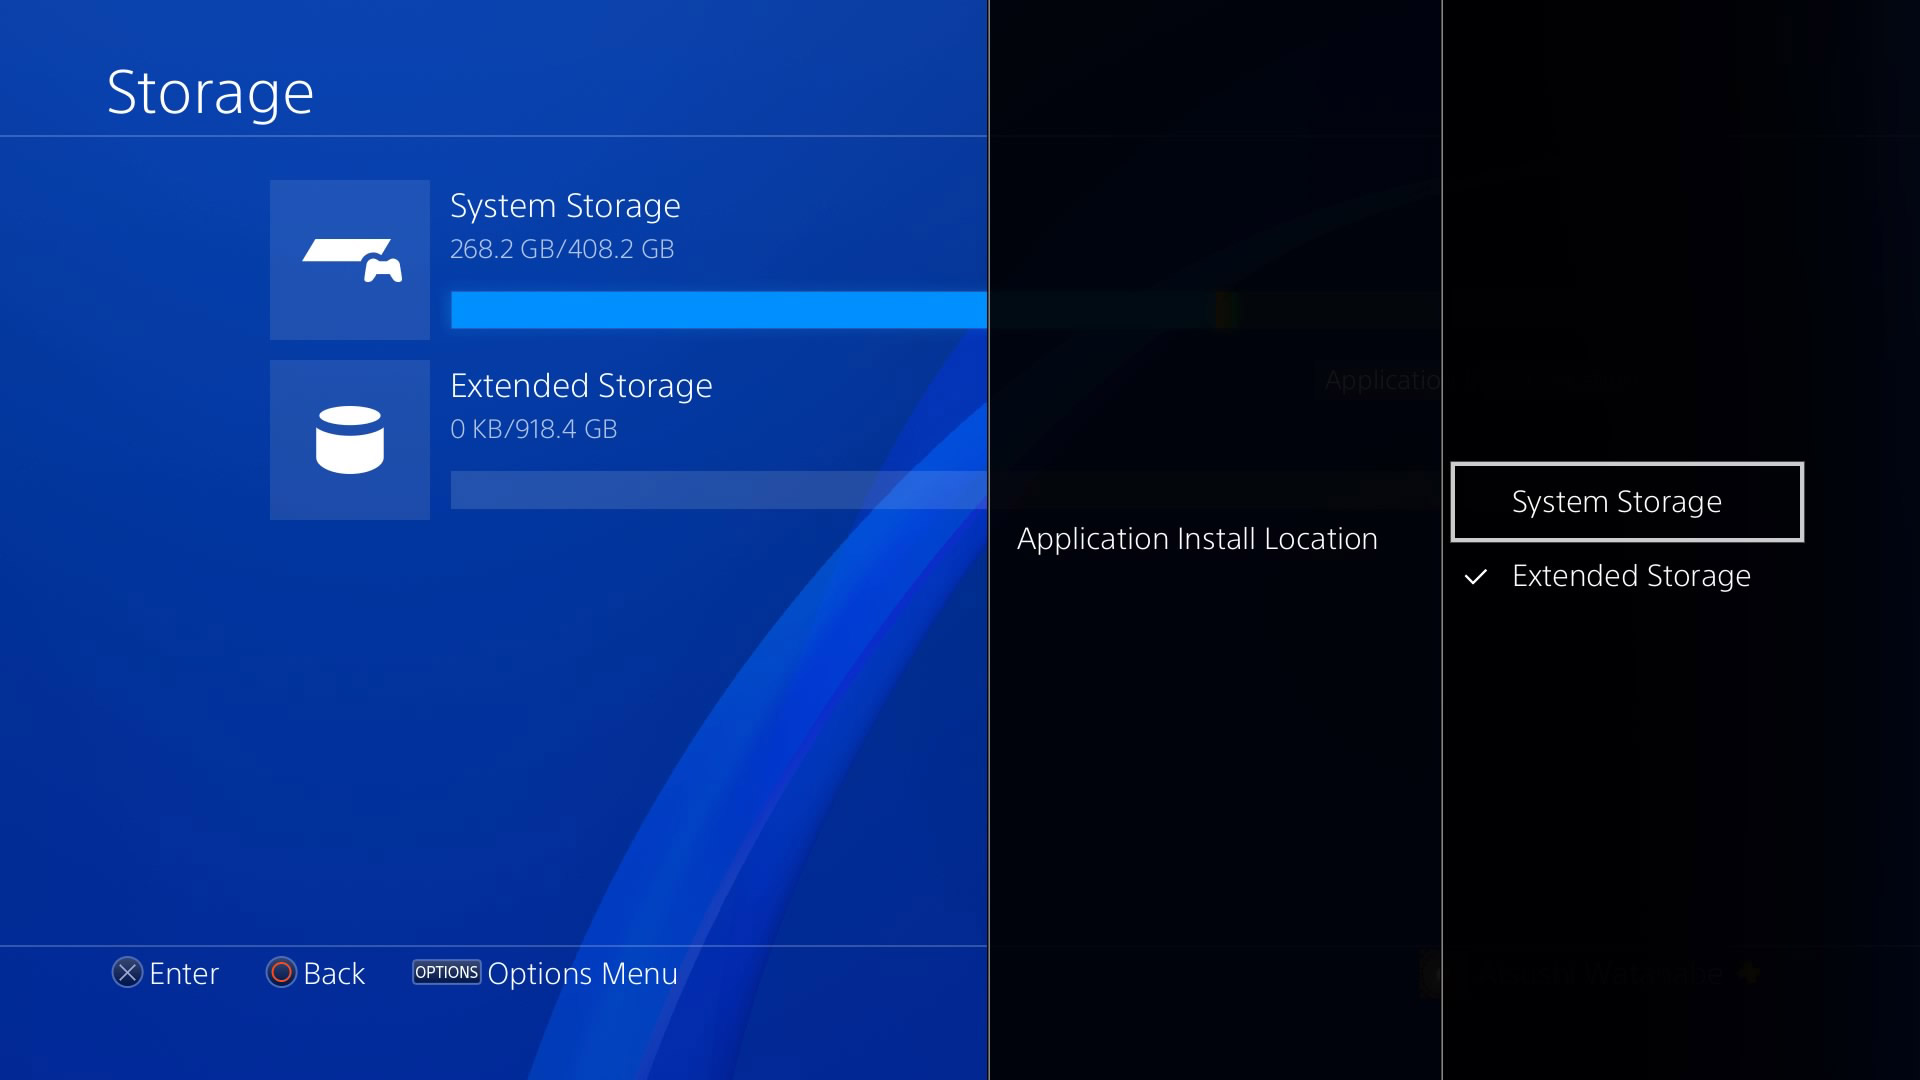 PS4 Selecting Application Install Location